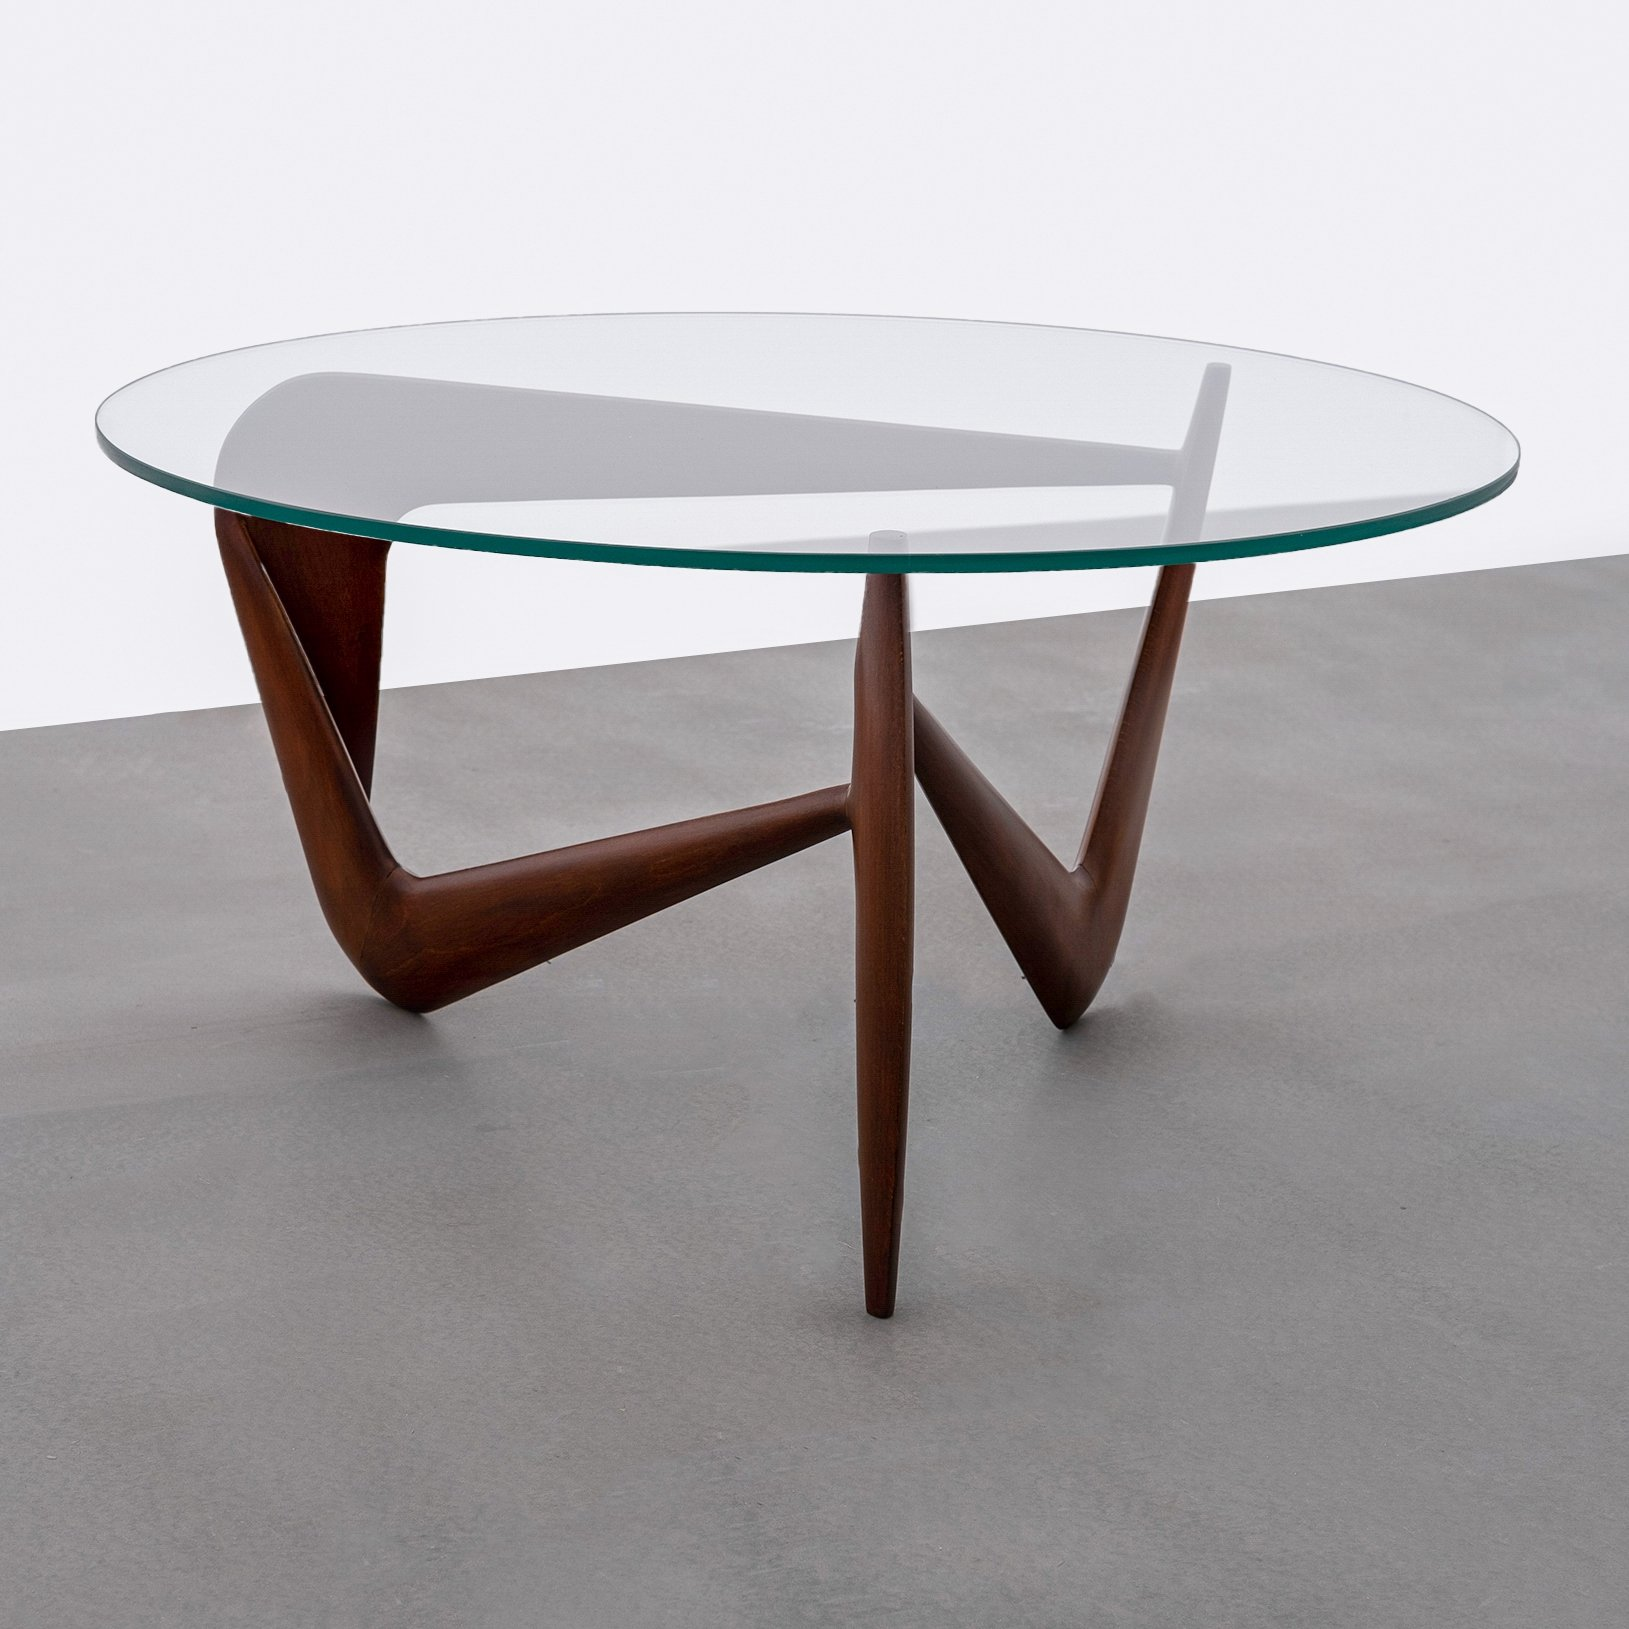 - Sculptural Louis Sognot Coffee Table With Glass Top, 1960s #127837